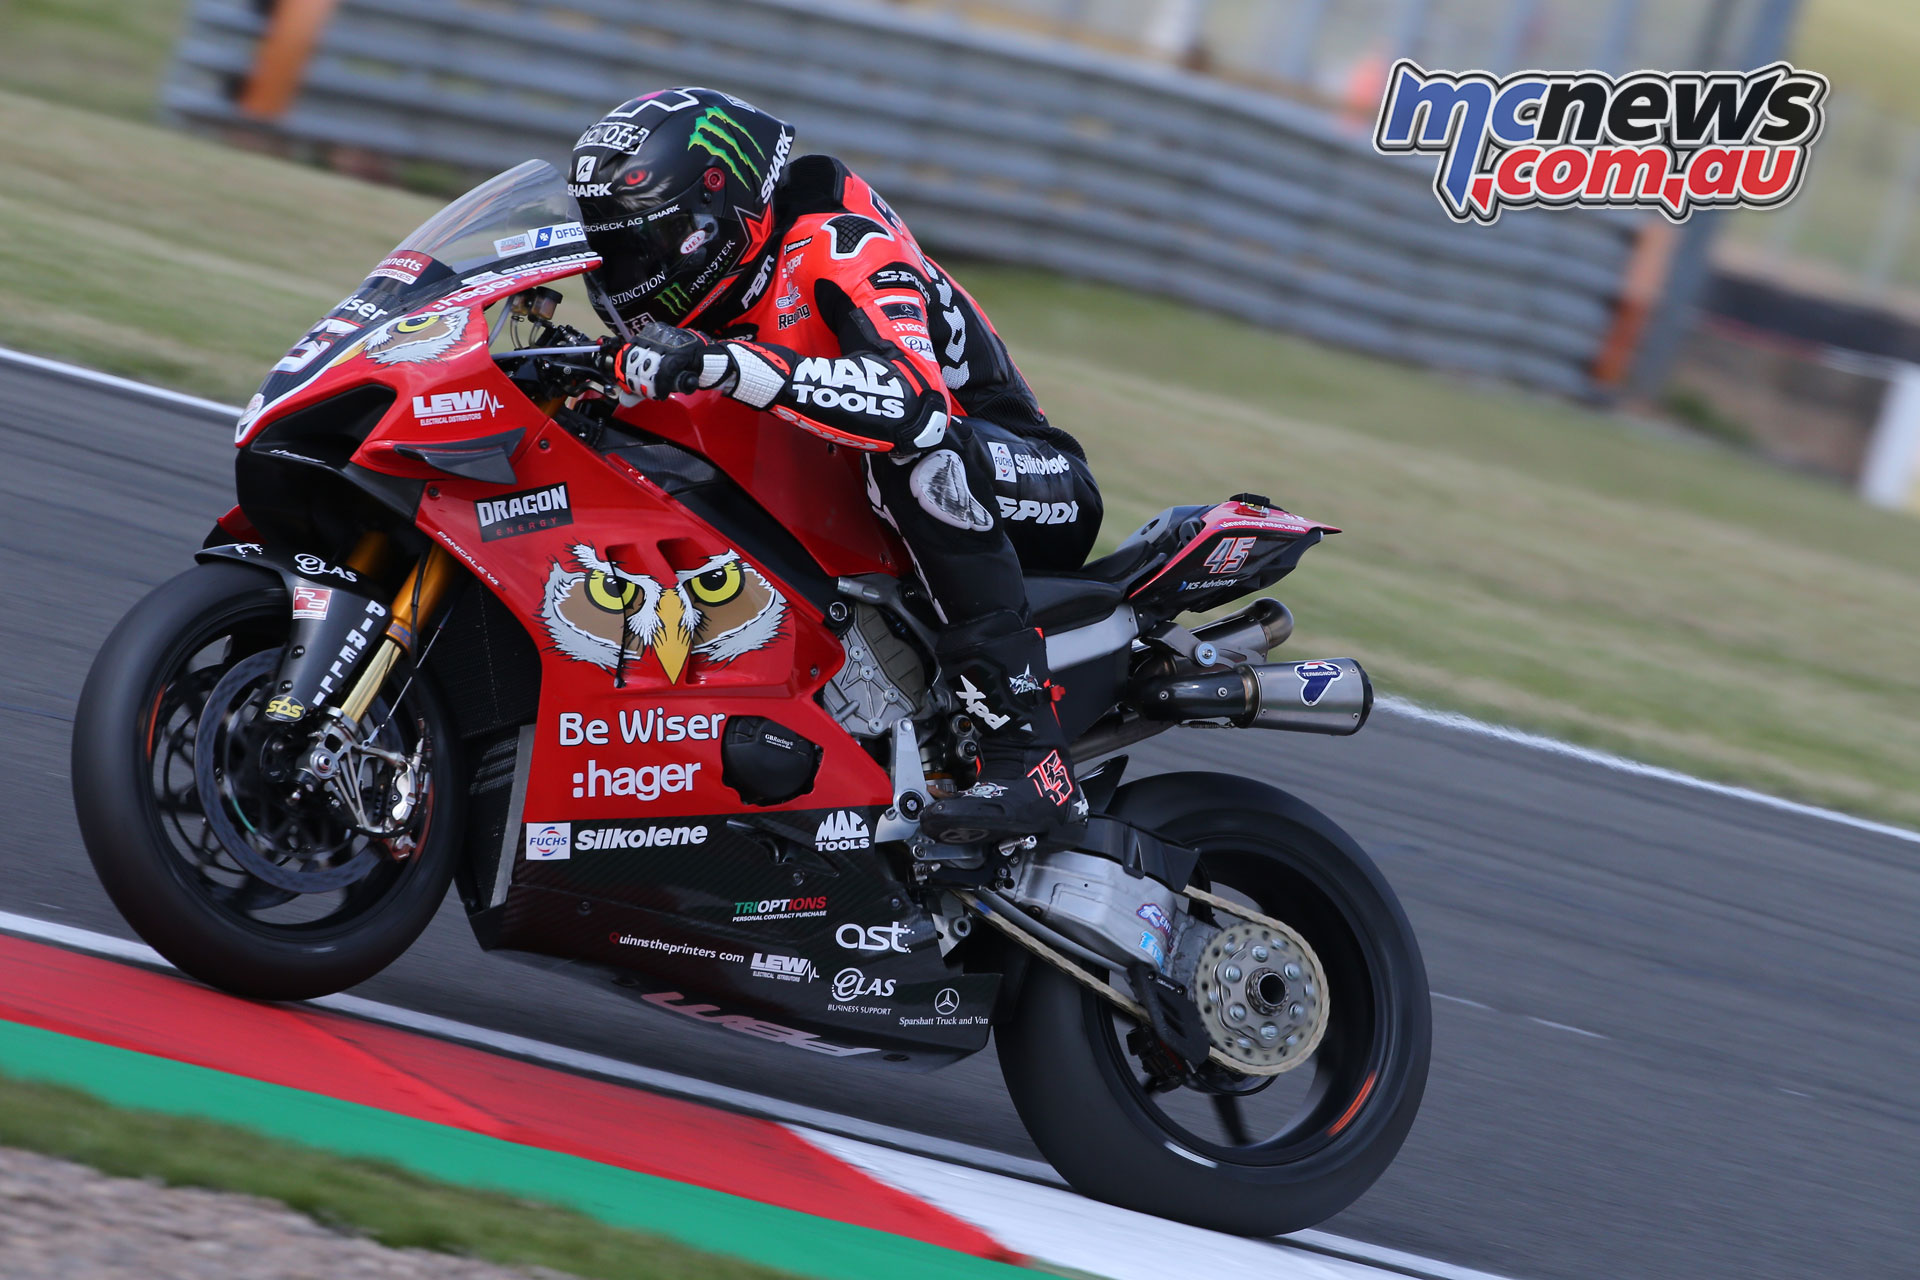 BSB Donington Rnd Fri Scott Redding Be Wiser Ducati AROA